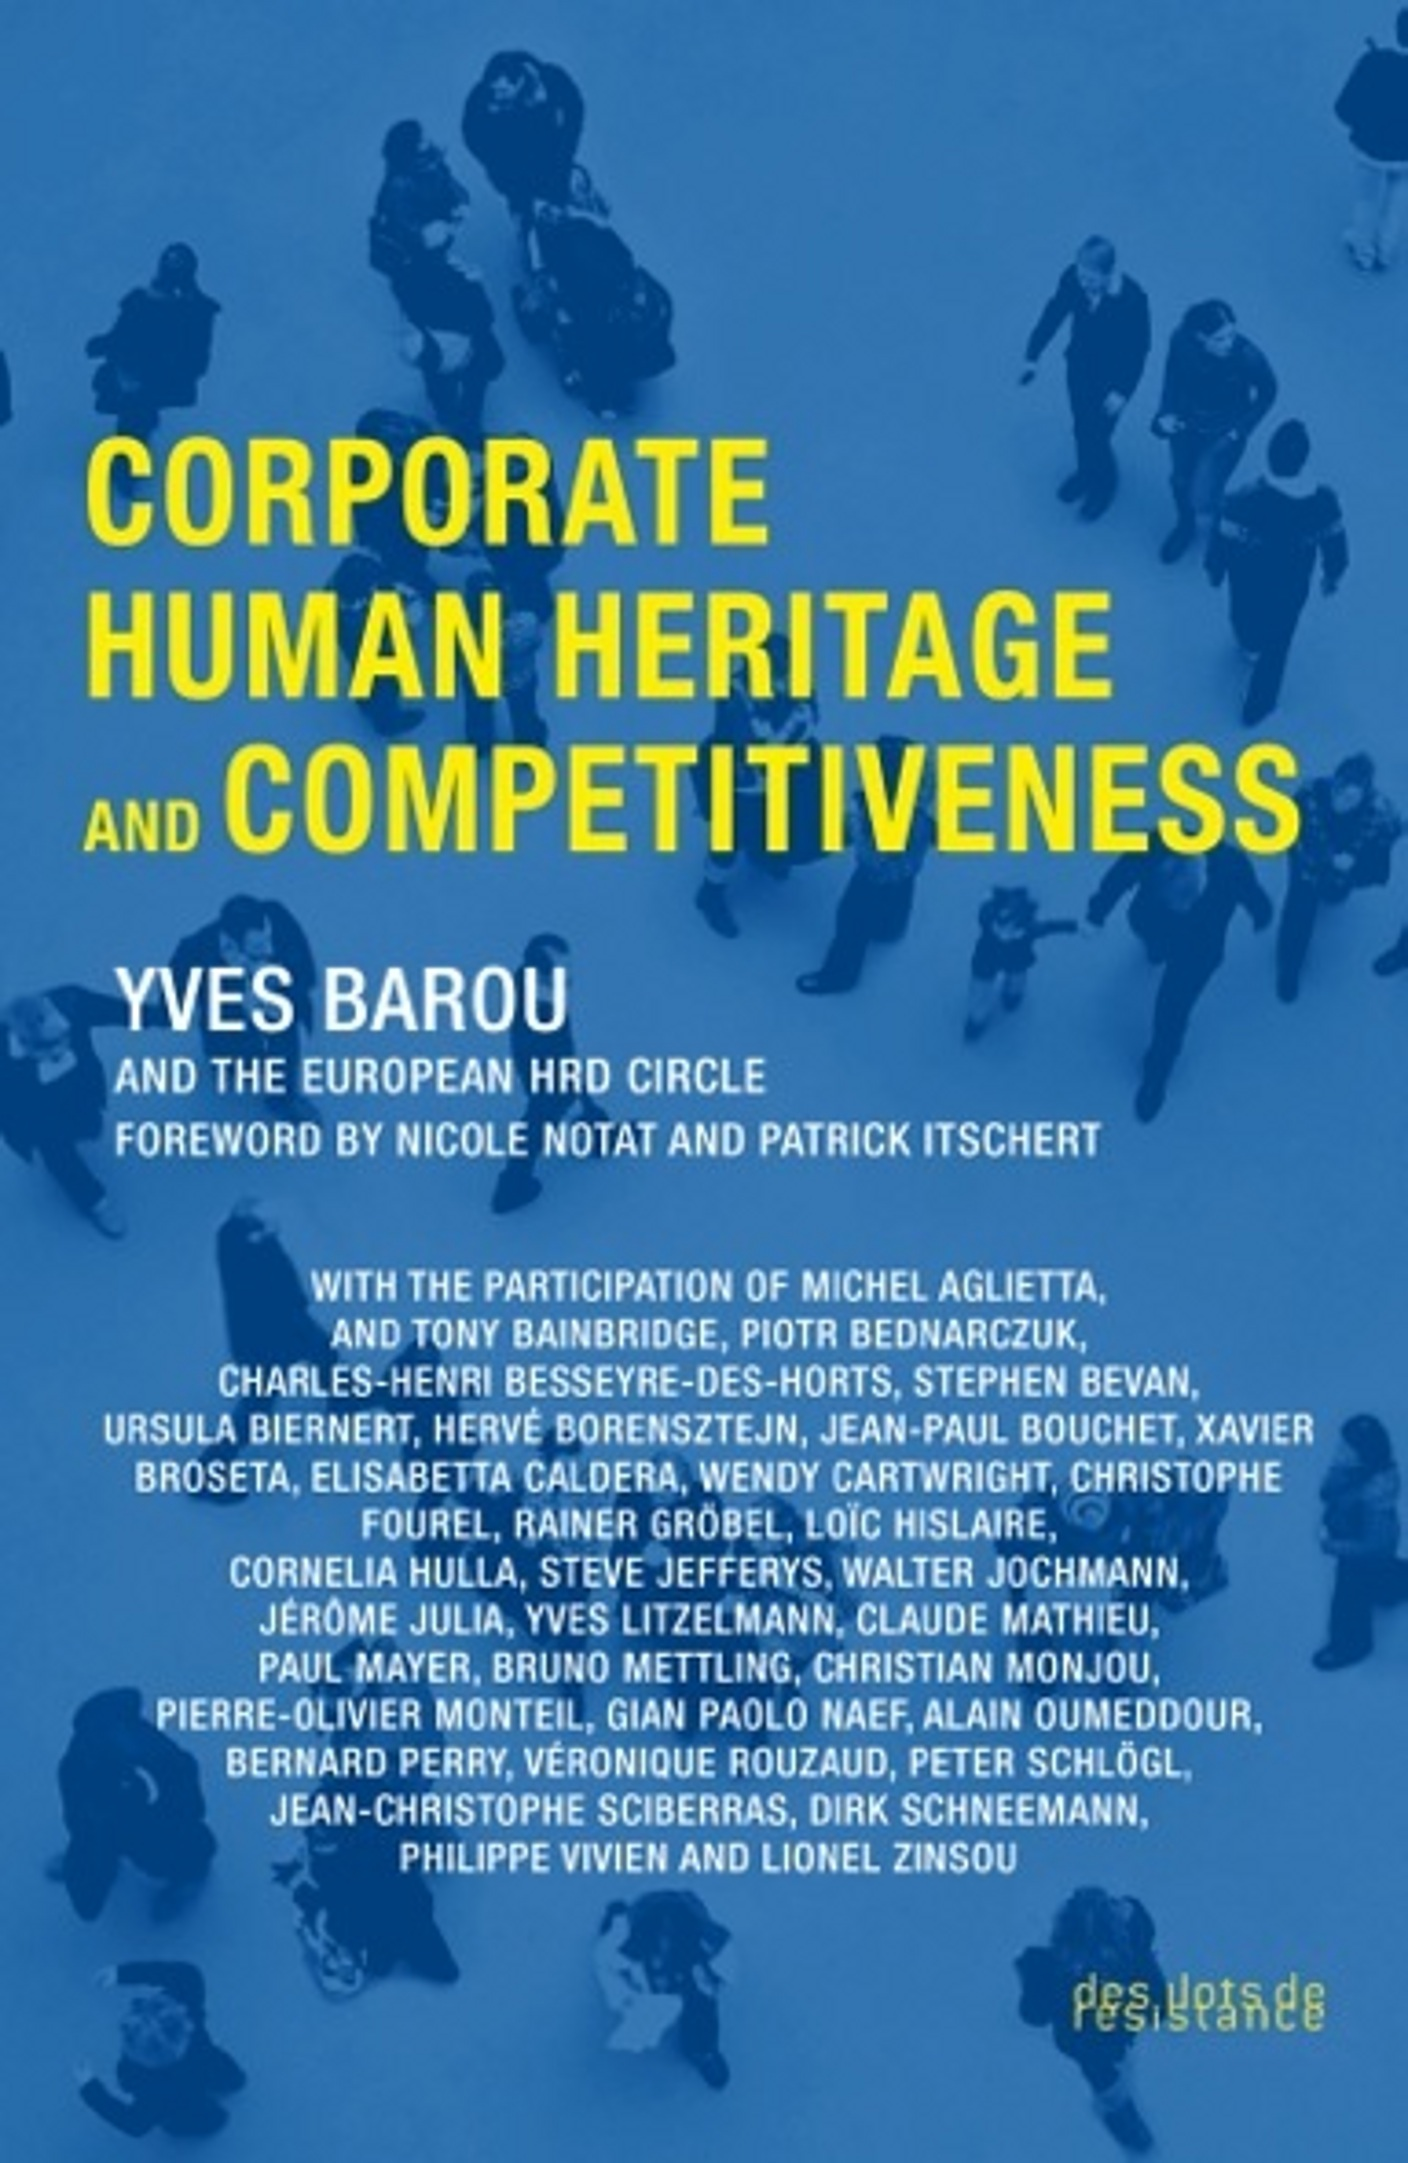 Corporate Human Heritage and Competitiveness